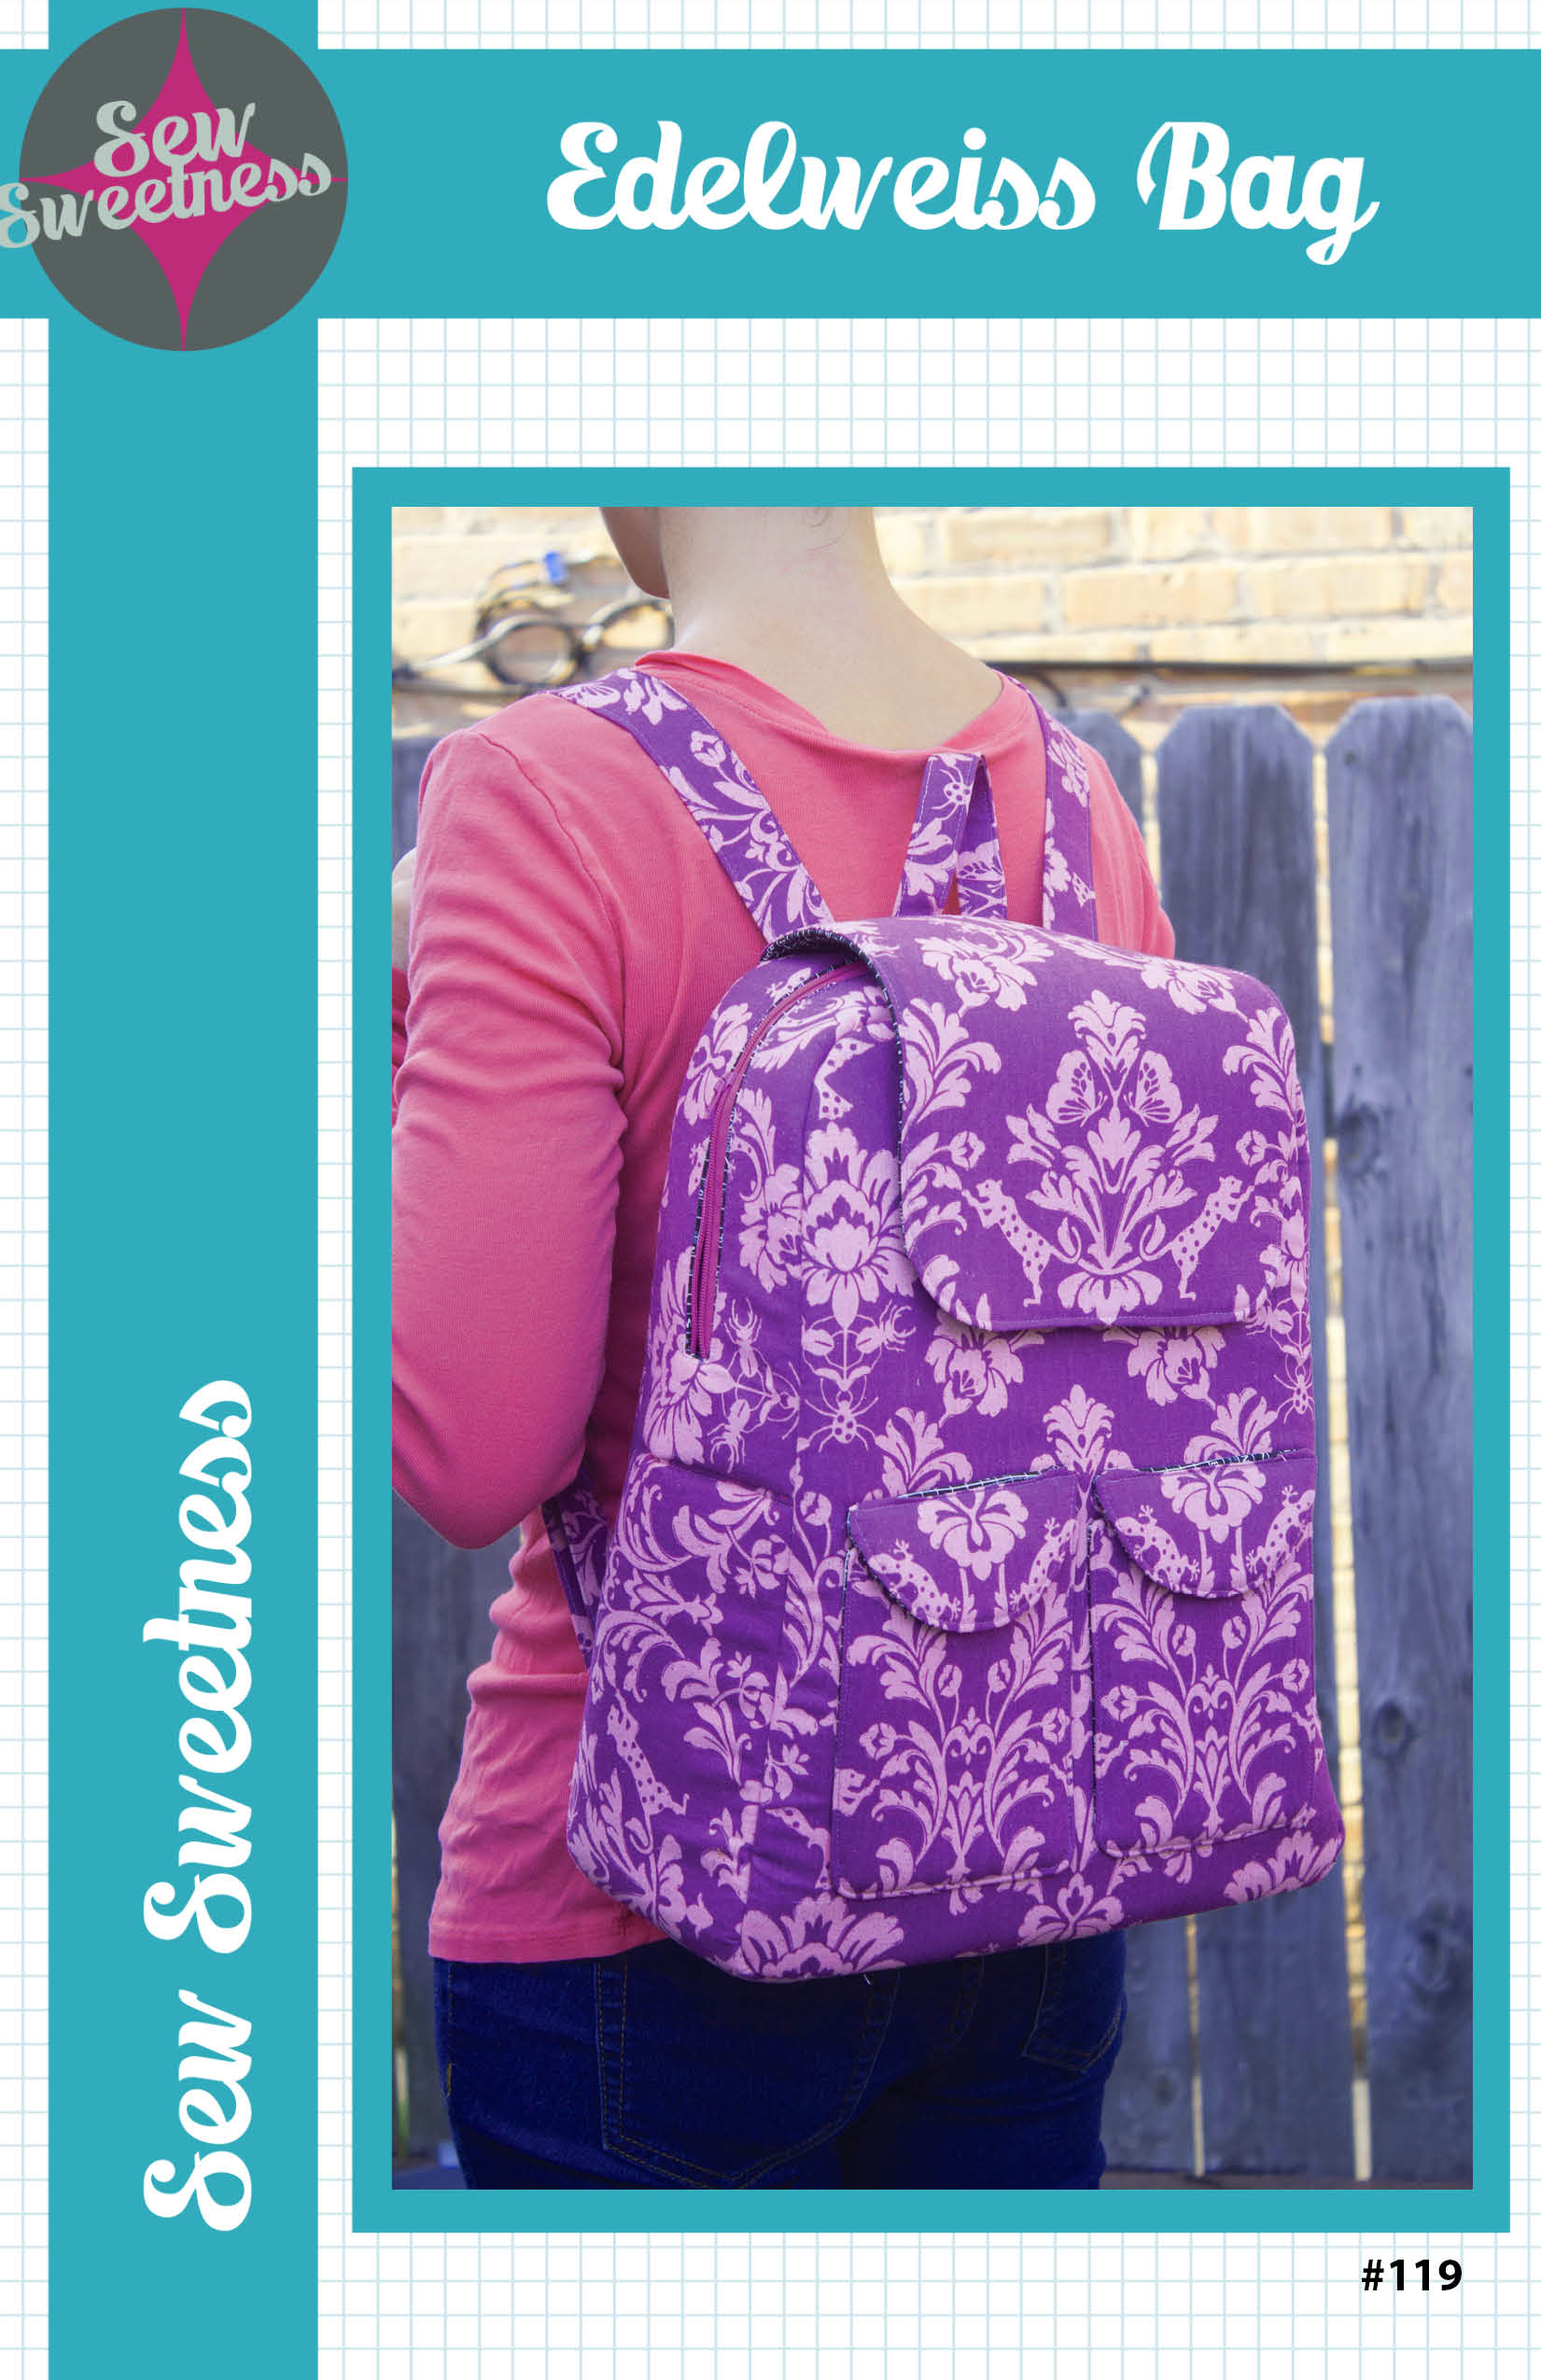 Quilting Sewing Bag Pattern ADELWEISS BAG by Sew Sweetness NEW